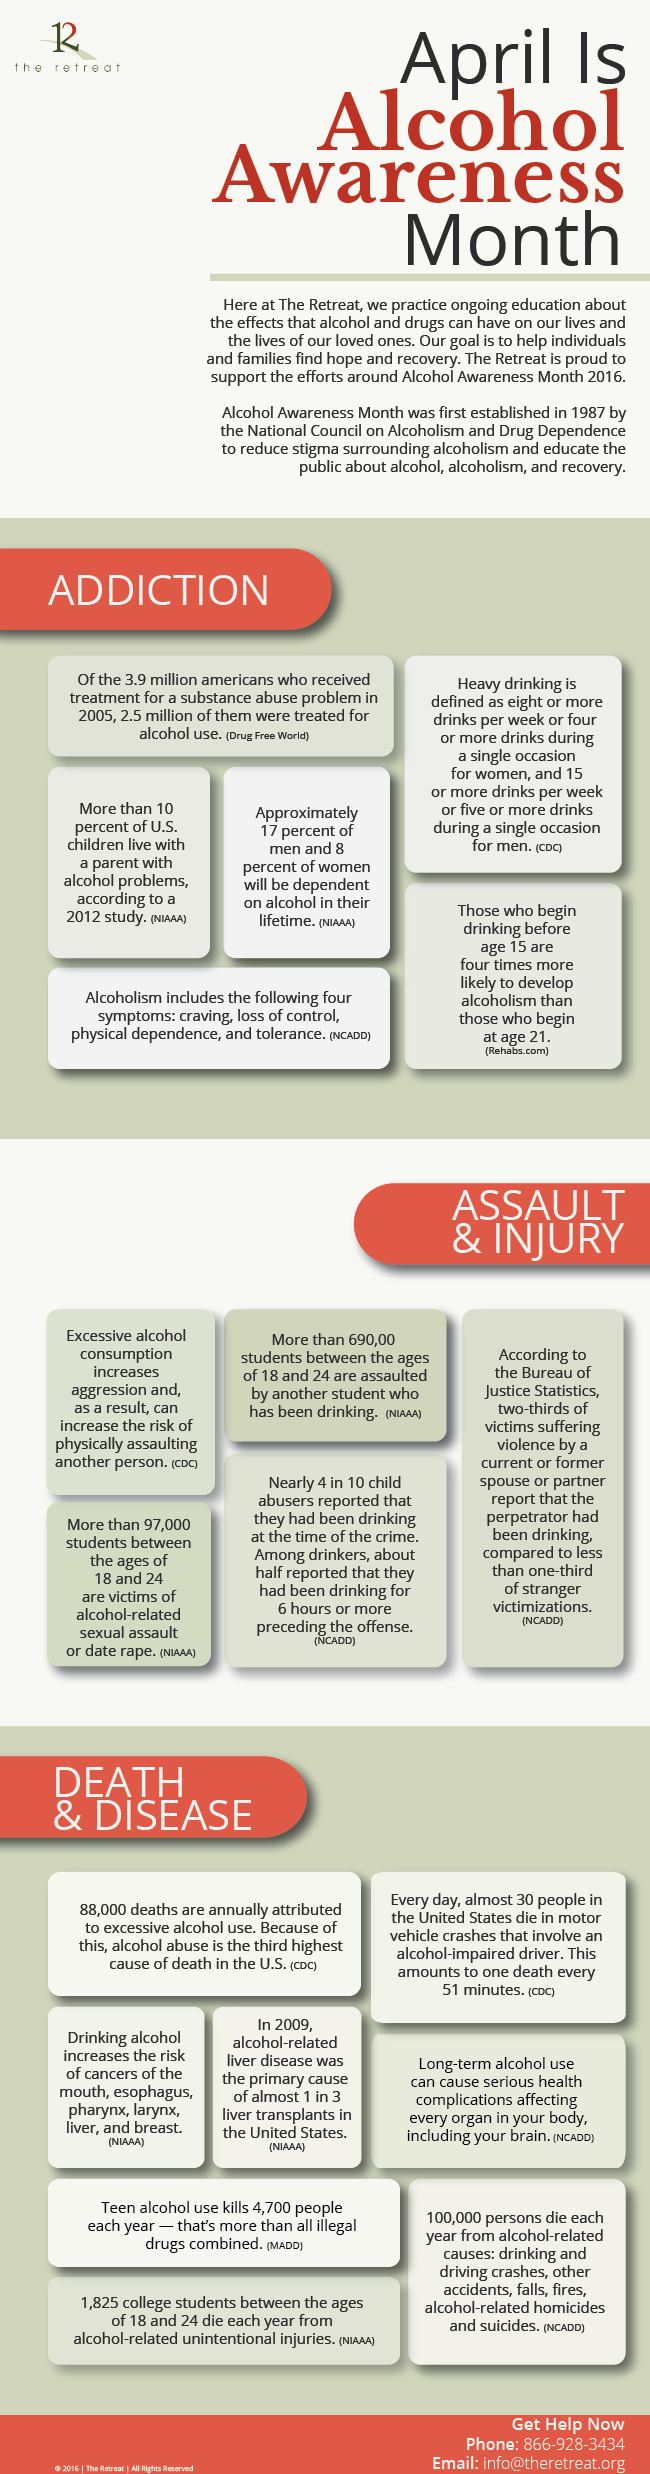 Alcohol-Awareness-Month-2016-01.png